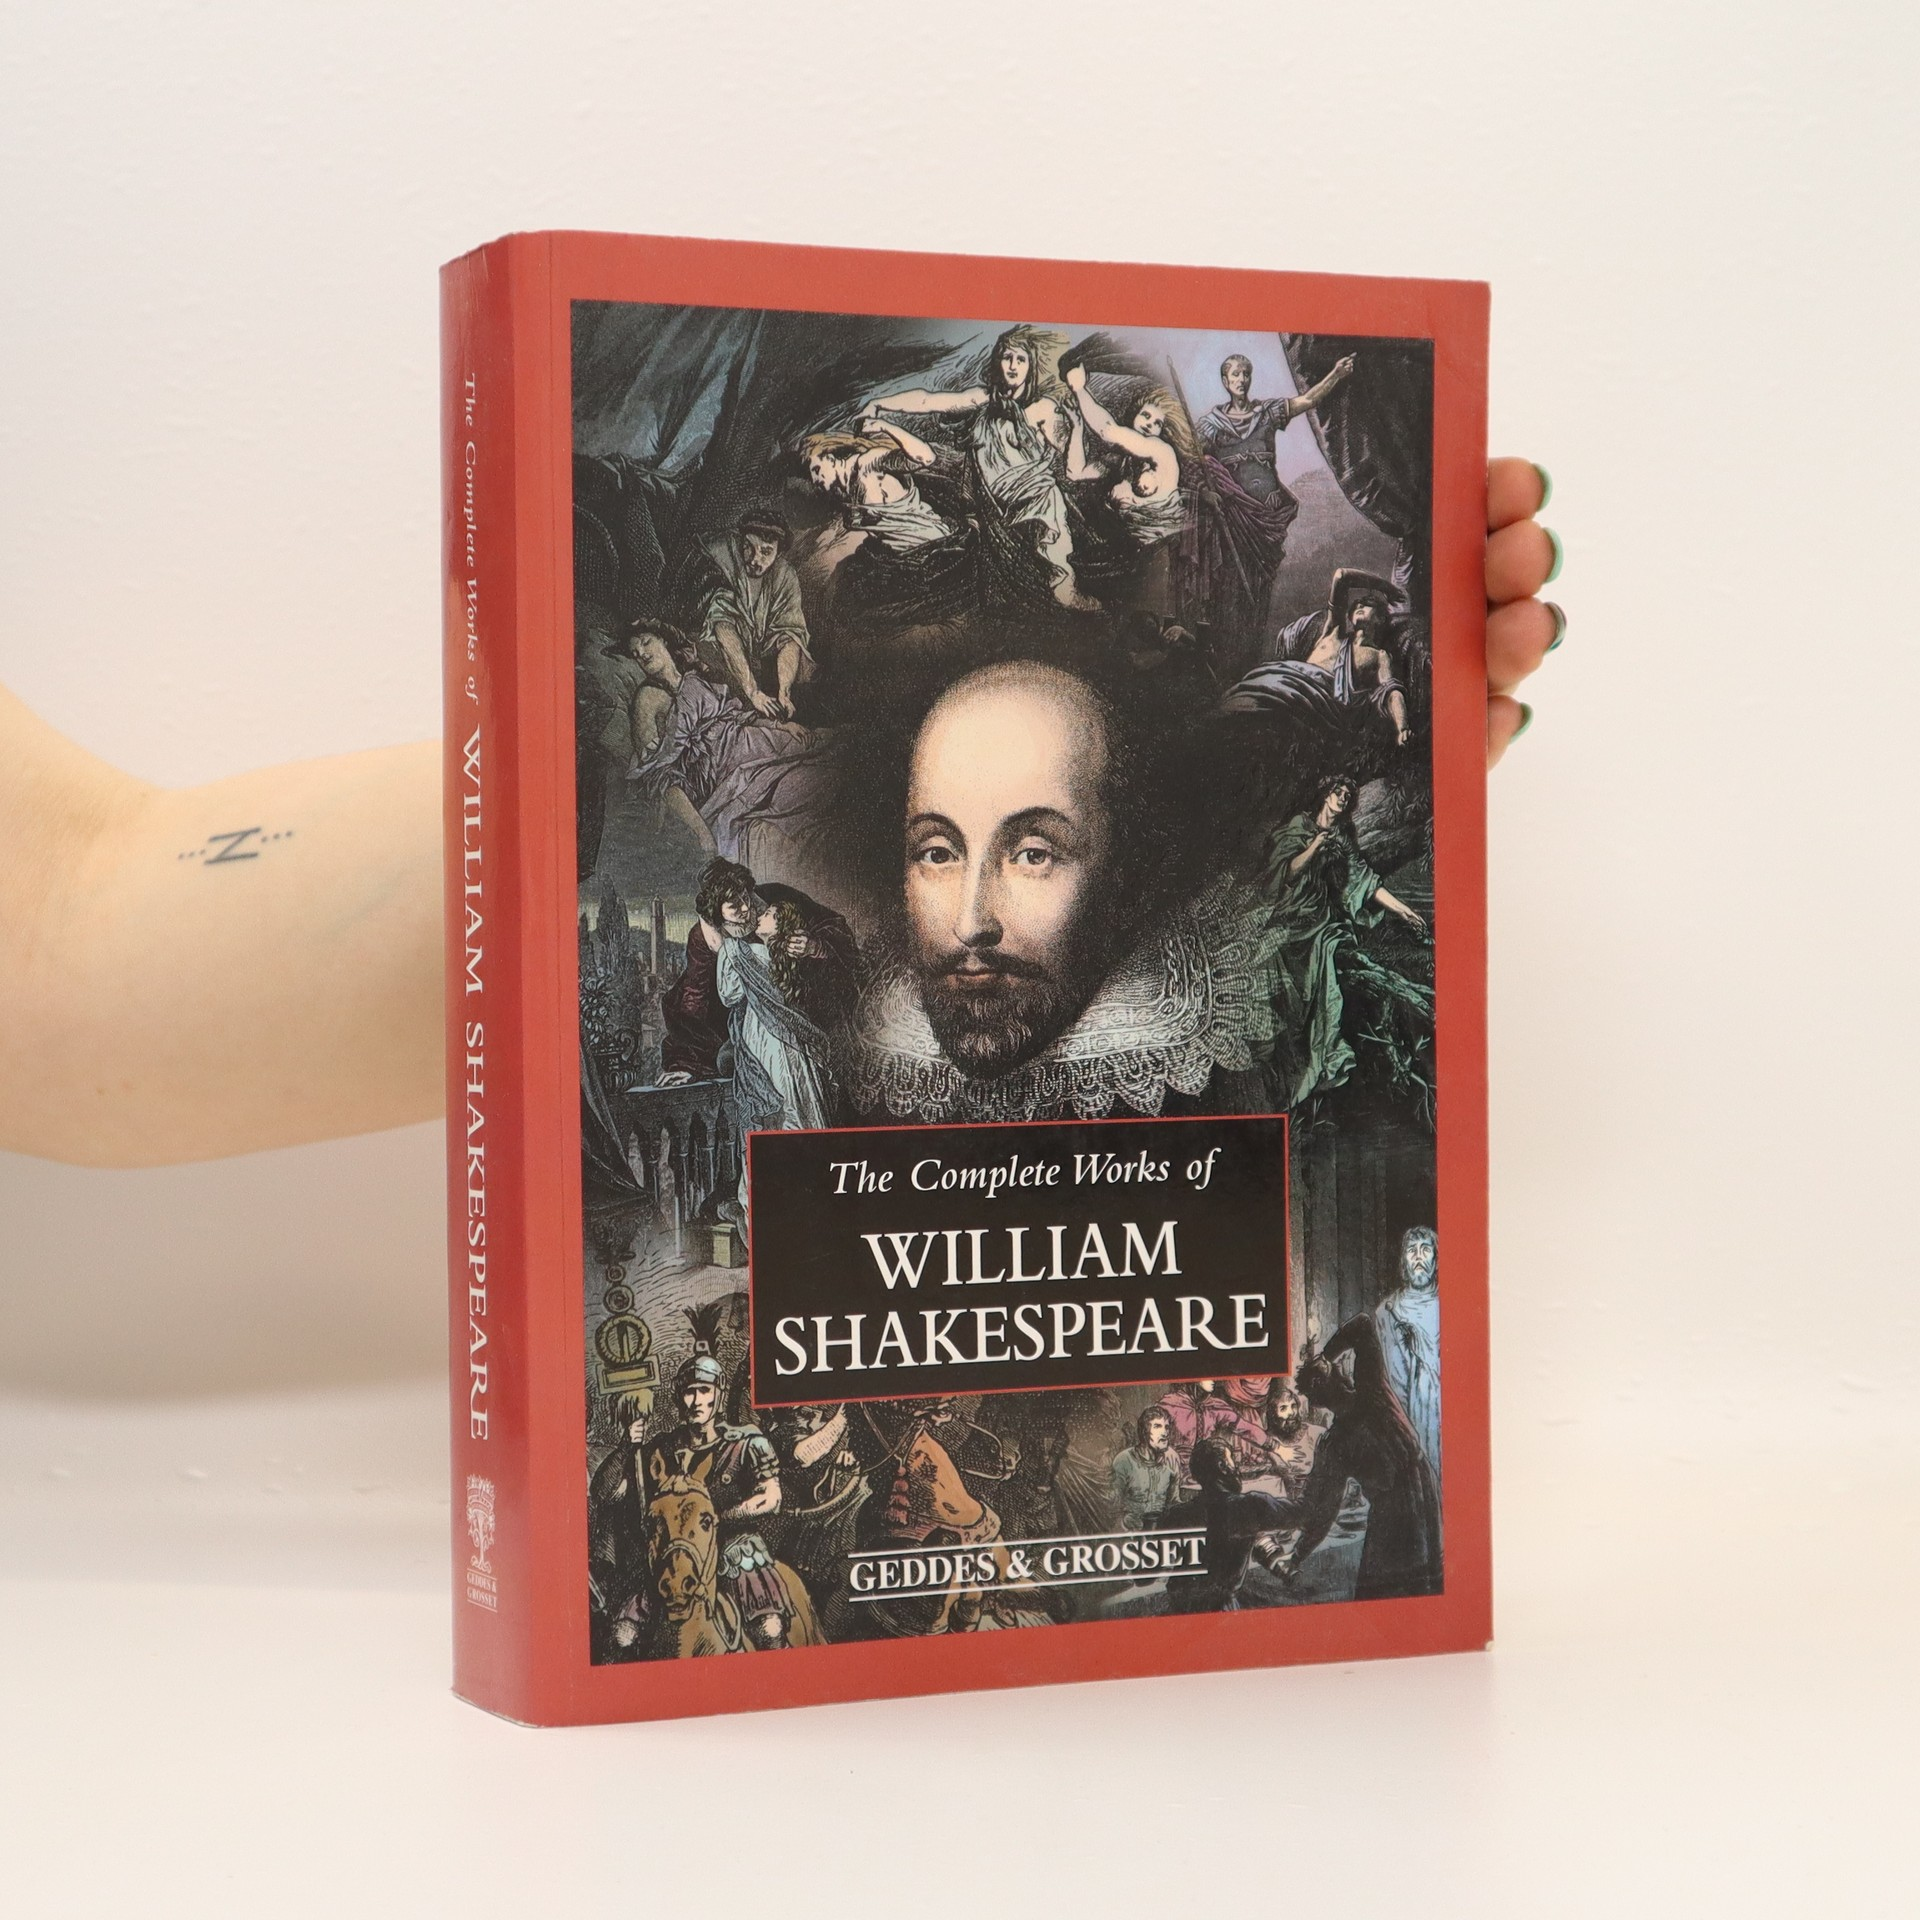 antikvární kniha The complete works of William Shakespeare, 2006